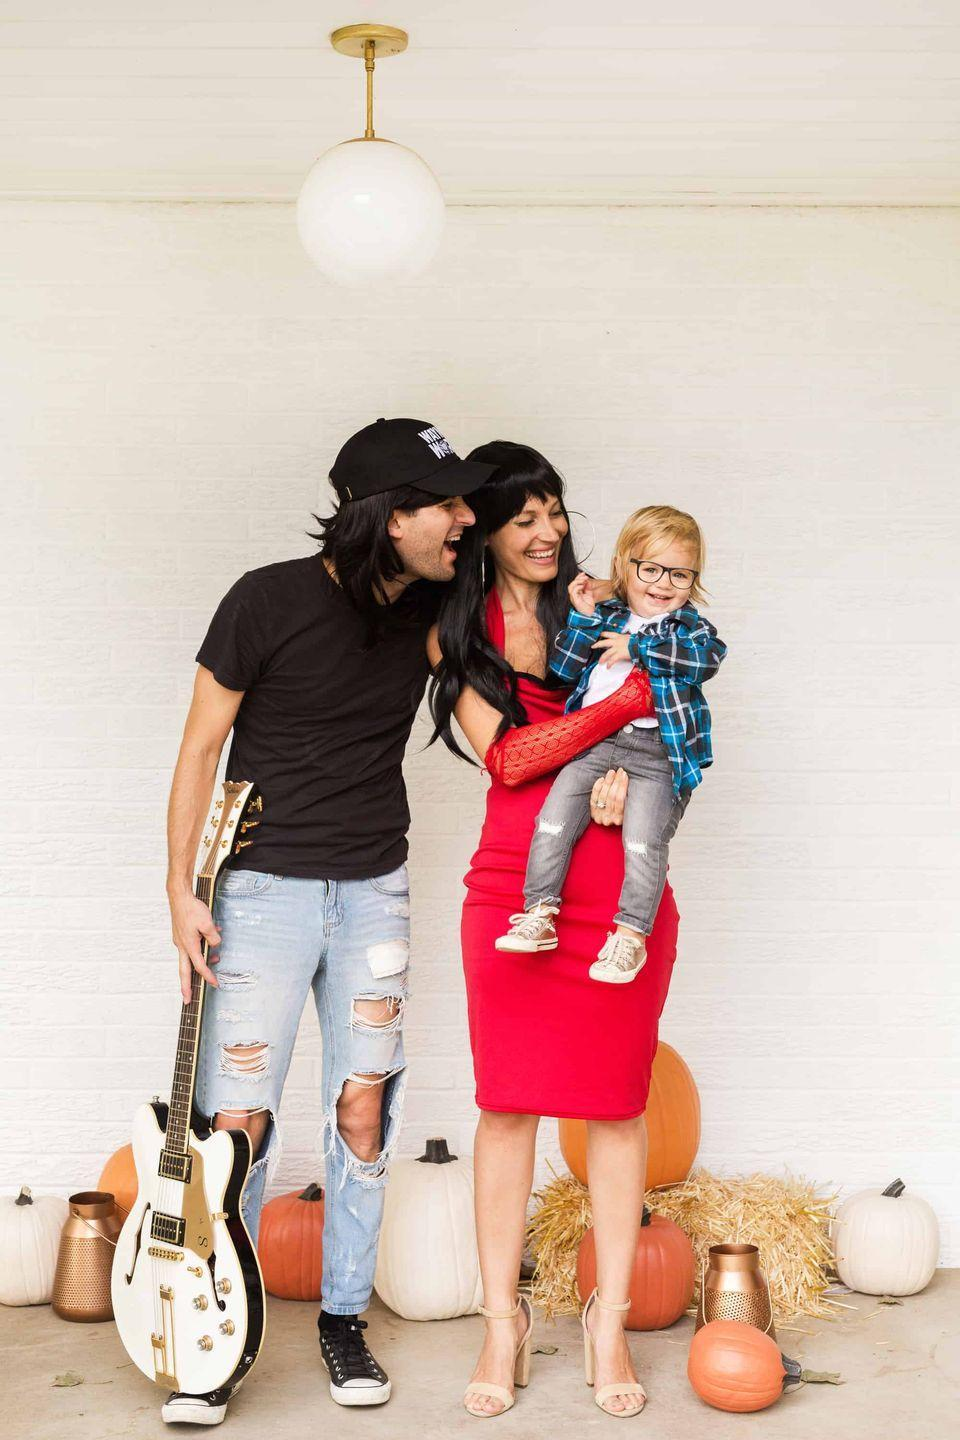 """<p>You'll be saying, """"Party time! Excellent!"""" in this throwback <em>Wayne's World</em> costume. We're loving this '<a href=""""https://www.countryliving.com/shopping/g23281444/90s-halloween-costumes/"""" rel=""""nofollow noopener"""" target=""""_blank"""" data-ylk=""""slk:90s"""" class=""""link rapid-noclick-resp"""">90s</a> look!</p><p><strong>Get the tutorial at <a href=""""https://abeautifulmess.com/2018/10/waynes-world-family-costume.html"""" rel=""""nofollow noopener"""" target=""""_blank"""" data-ylk=""""slk:A Beautiful Mess"""" class=""""link rapid-noclick-resp"""">A Beautiful Mess</a>. </strong></p><p><strong><a class=""""link rapid-noclick-resp"""" href=""""https://www.amazon.com/Amazon-Essentials-6-Pack-Crewneck-Undershirts/dp/B071GDV2B2/?tag=syn-yahoo-20&ascsubtag=%5Bartid%7C10050.g.29074815%5Bsrc%7Cyahoo-us"""" rel=""""nofollow noopener"""" target=""""_blank"""" data-ylk=""""slk:SHOP BLACK T-SHIRTS"""">SHOP BLACK T-SHIRTS</a><br></strong></p>"""